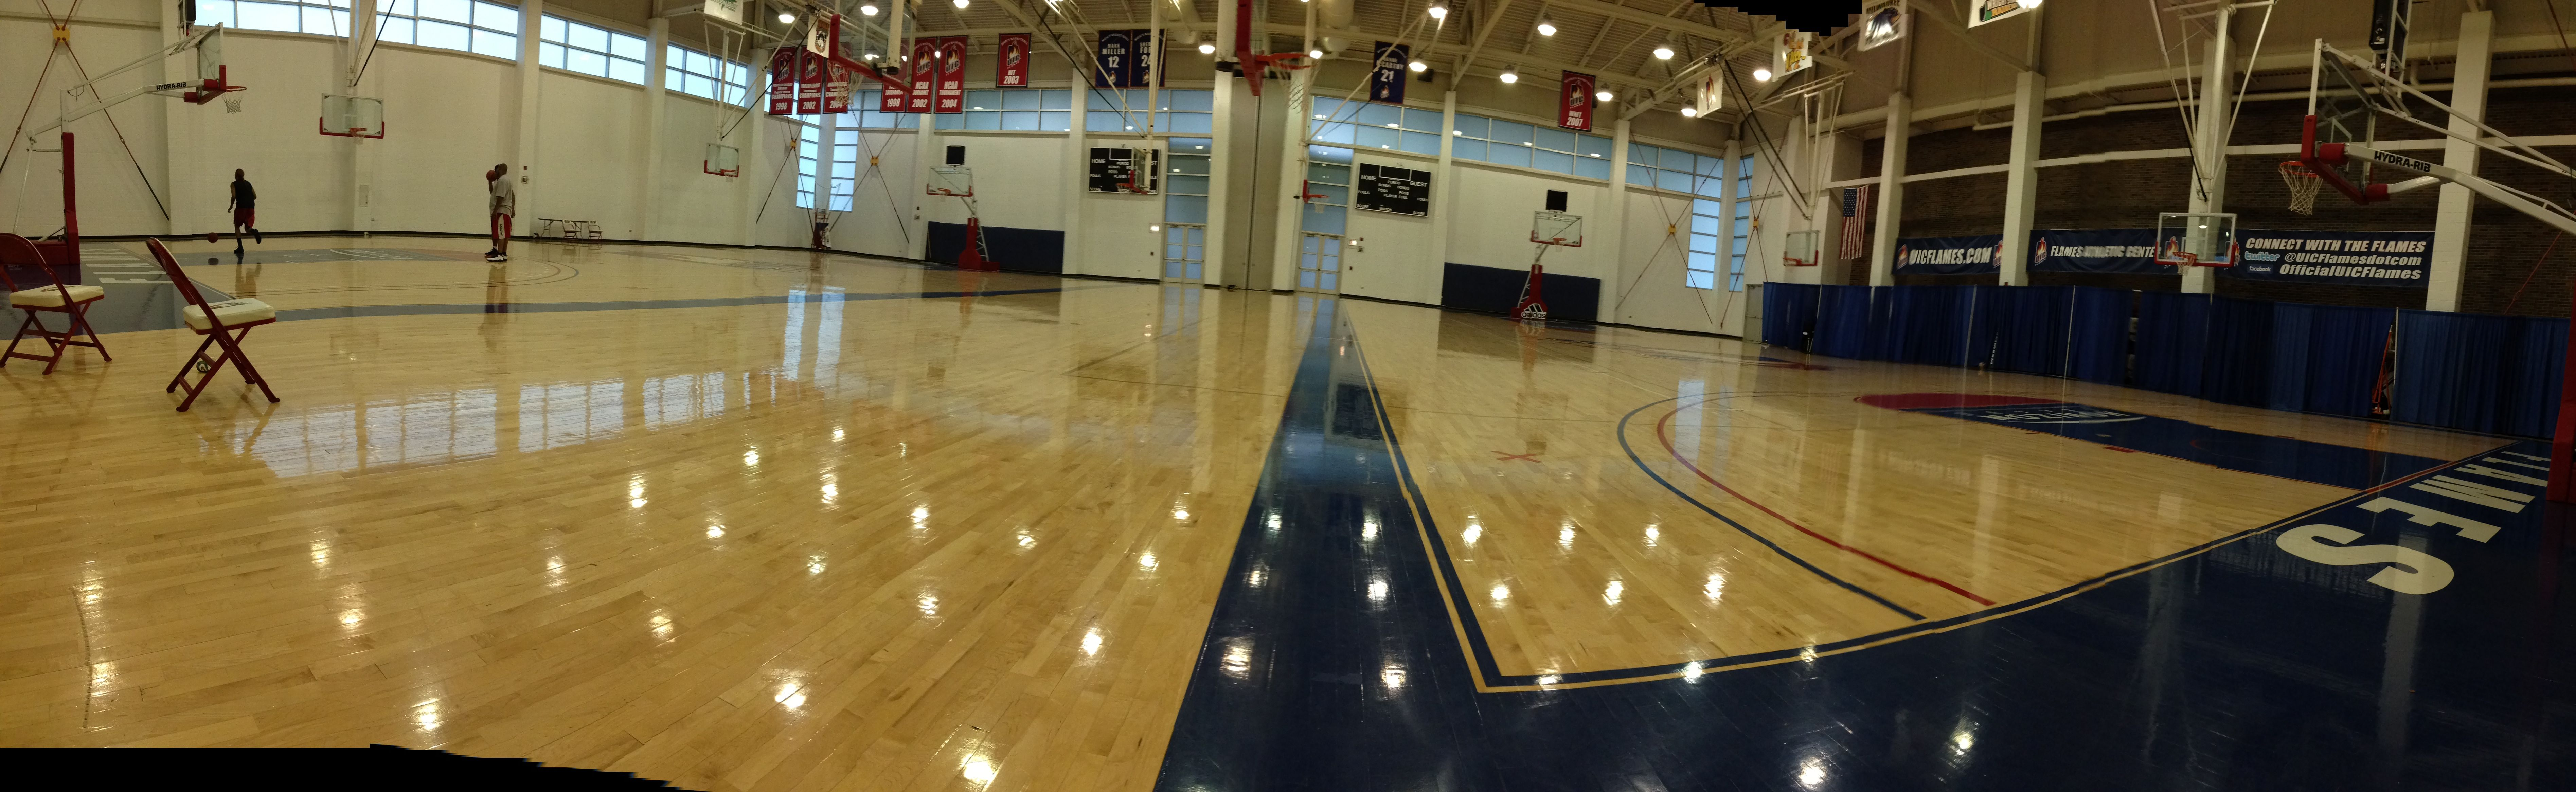 Open Gym Went Well At Uic Today Open Gym Gym Basketball Court